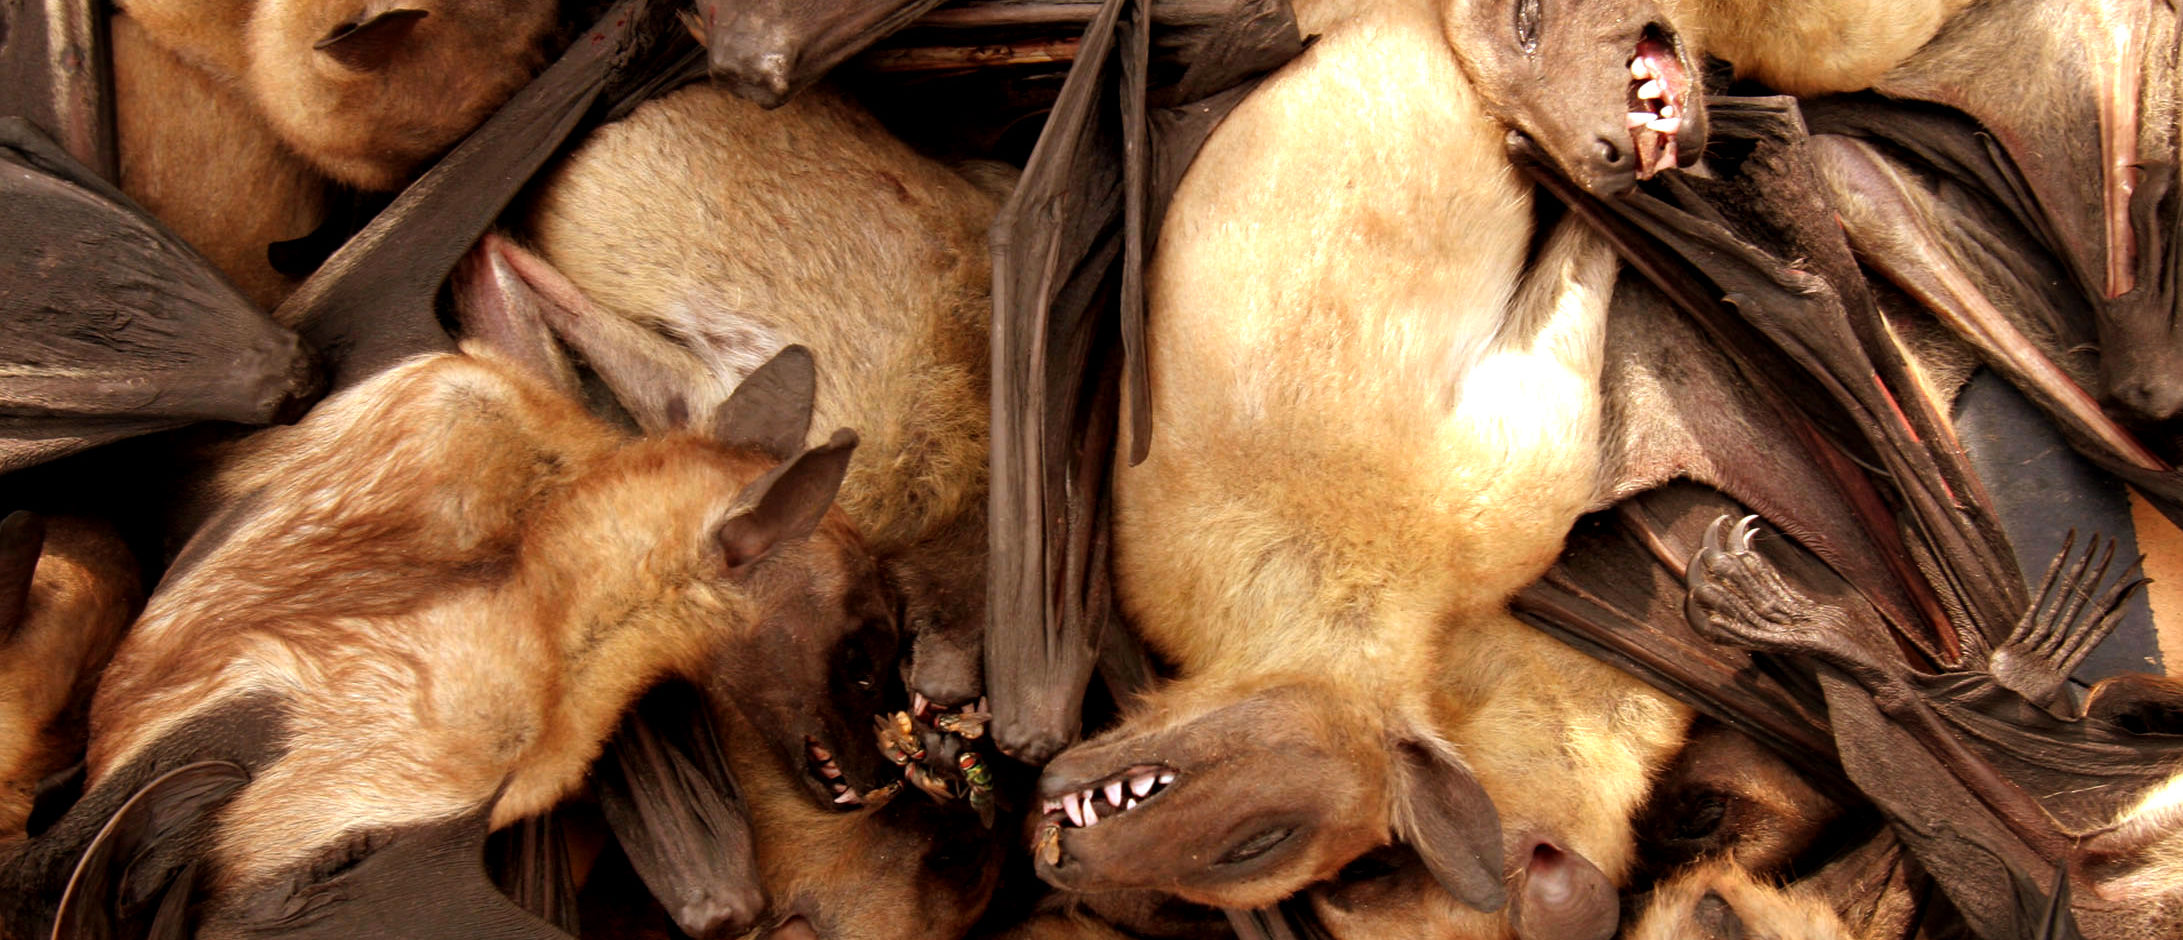 Fruit bats are seen for sale at a food market in Brazzavile, Republic of Congo, December 15, 2005. REUTERS/Jiro Ose